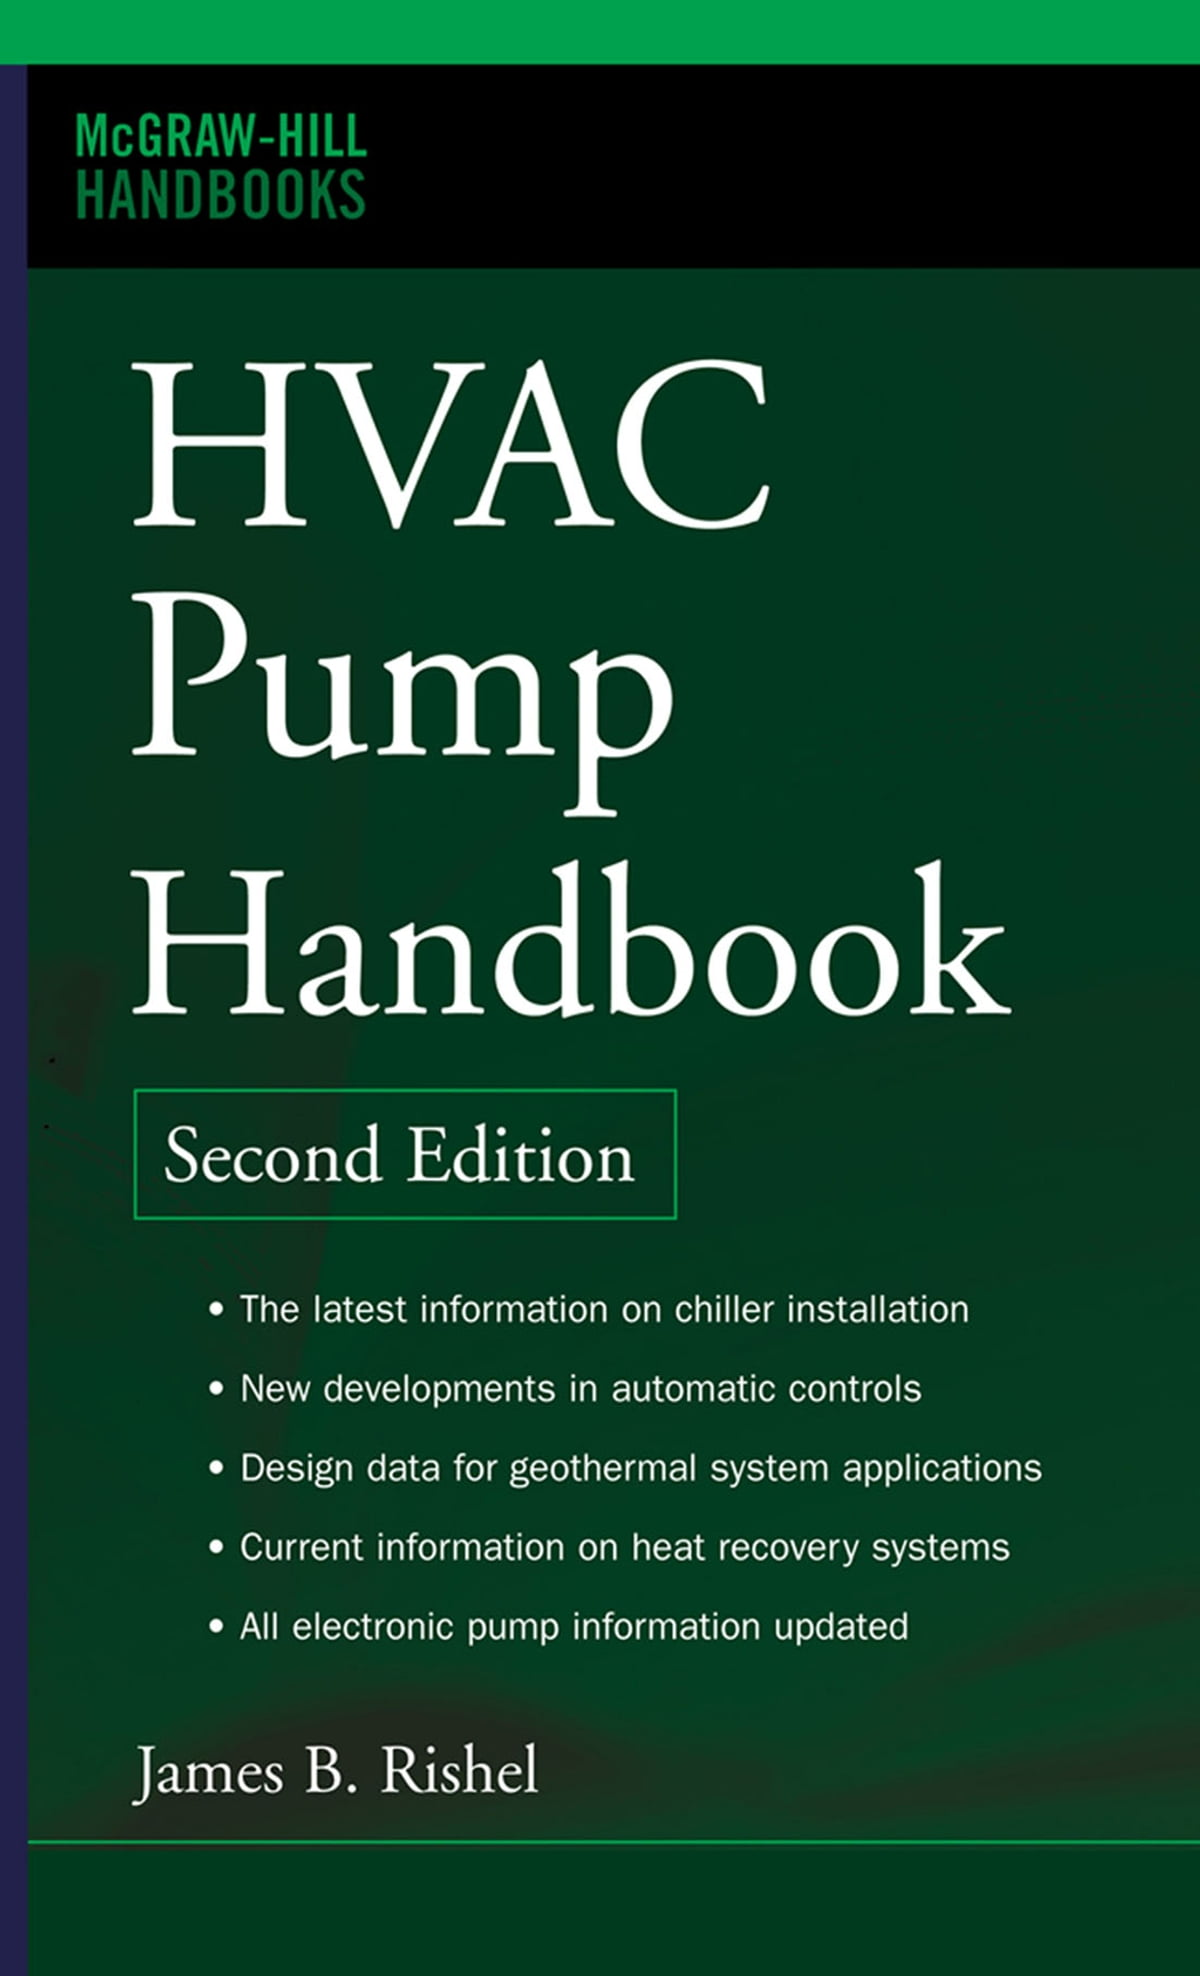 https://kbimages1-a.akamaihd.net/678bcc2b-4bf0-401a-a15a-62909cbb91d5/1200/1200/False/hvac-pump-handbook-second-edition.jpg